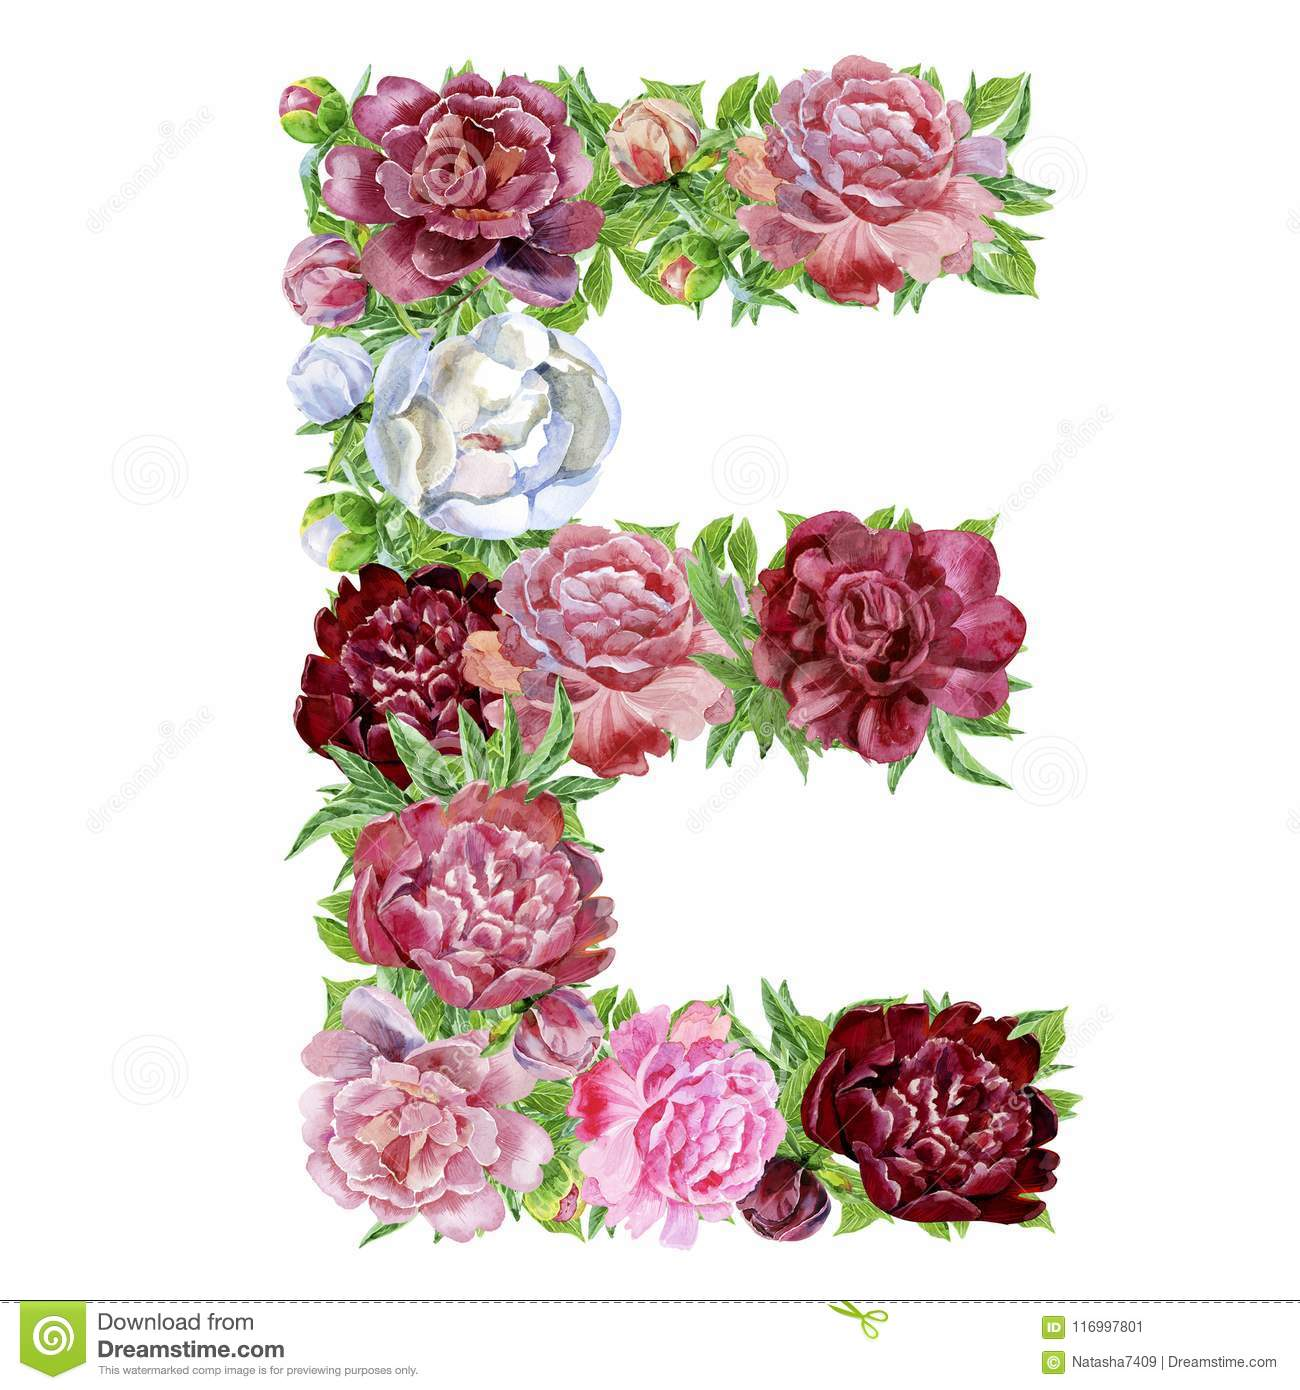 Letter E of watercolor flowers